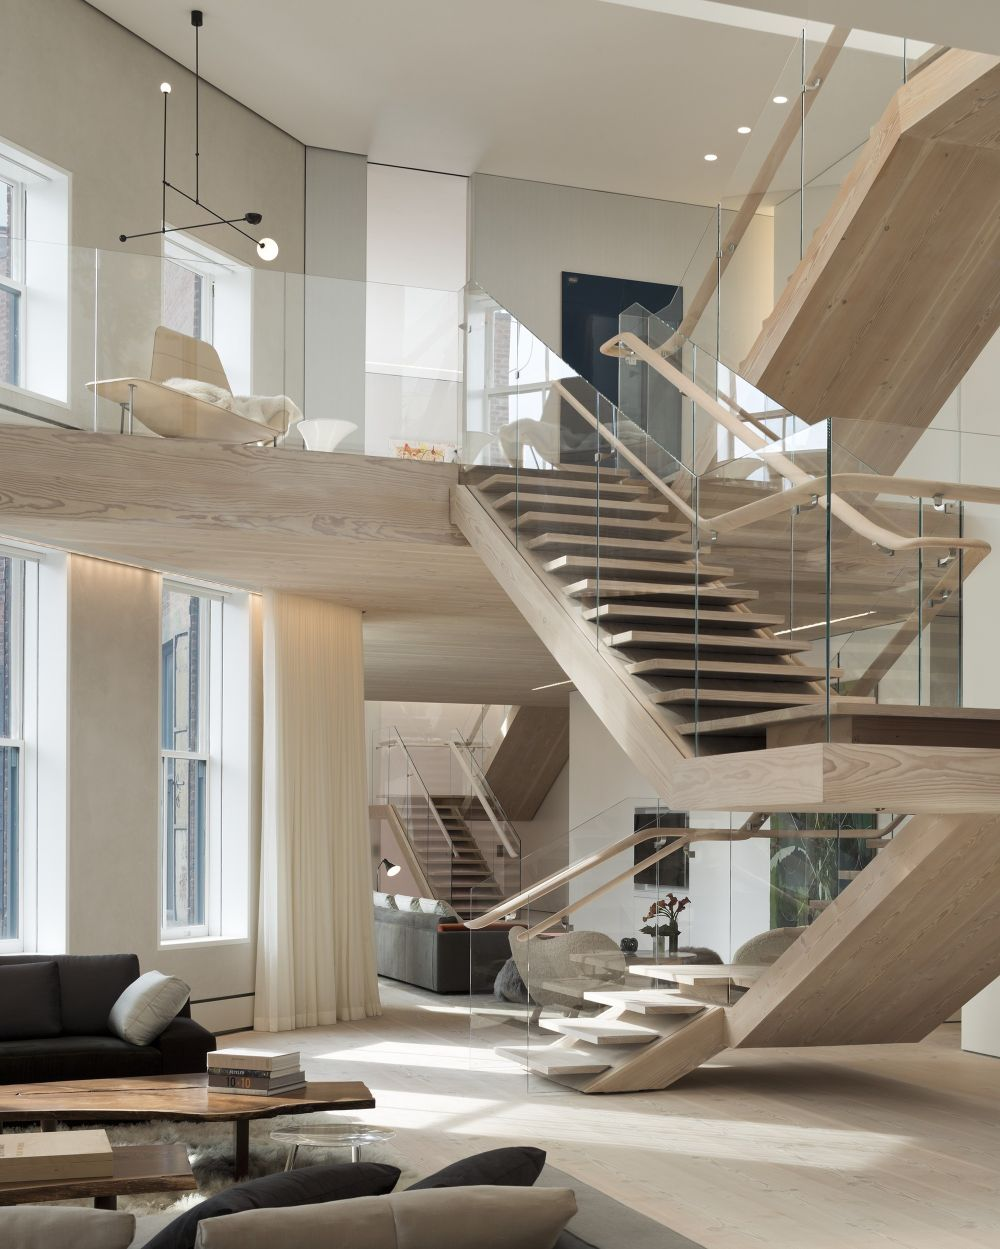 Staircase Designs That Bring Out The Beauty In Every Home